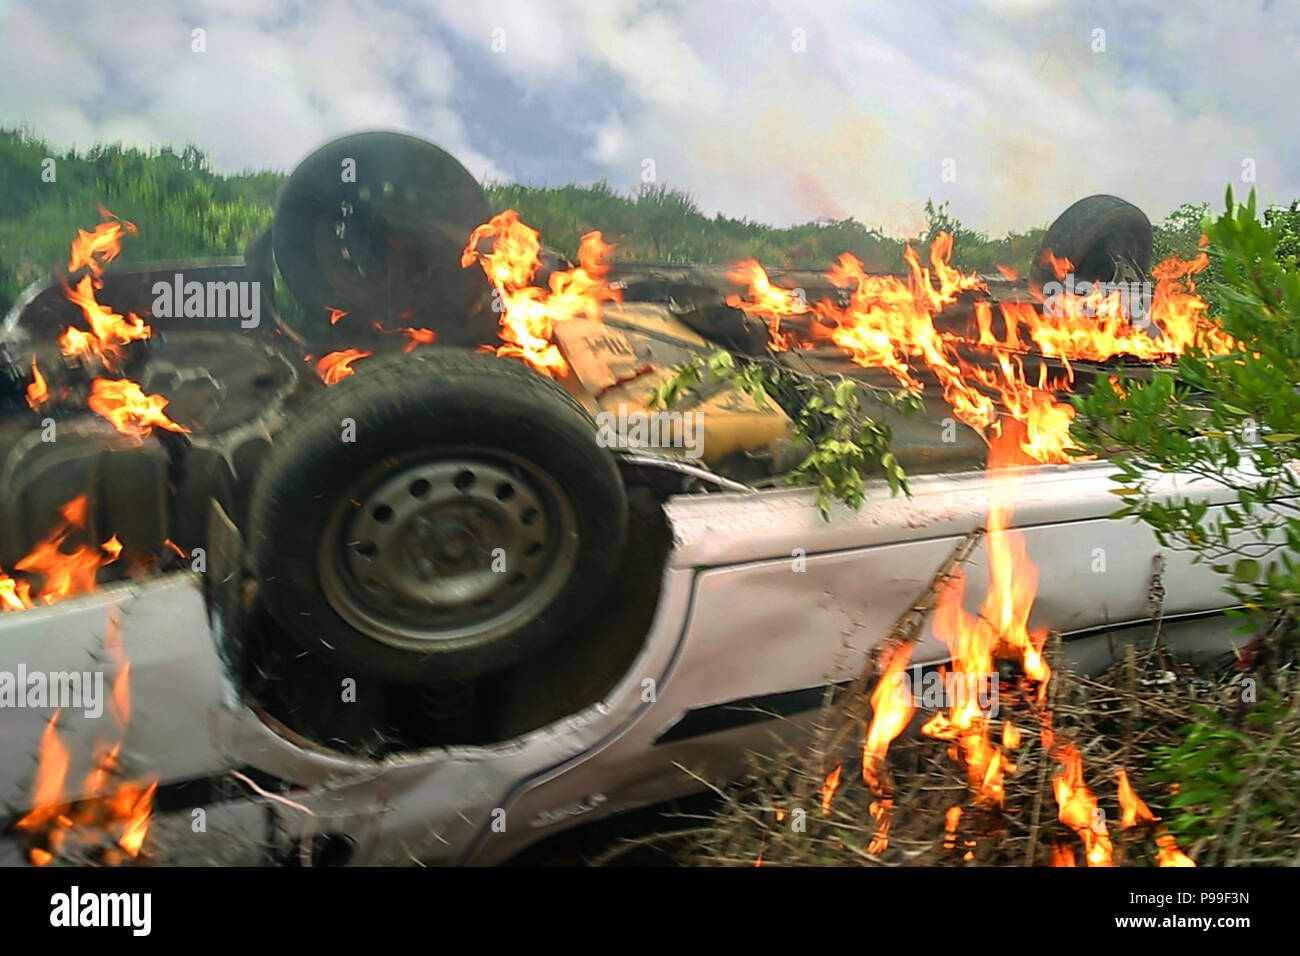 Cars On Fire Car Accident And Fire On Forests Day Effects Stock